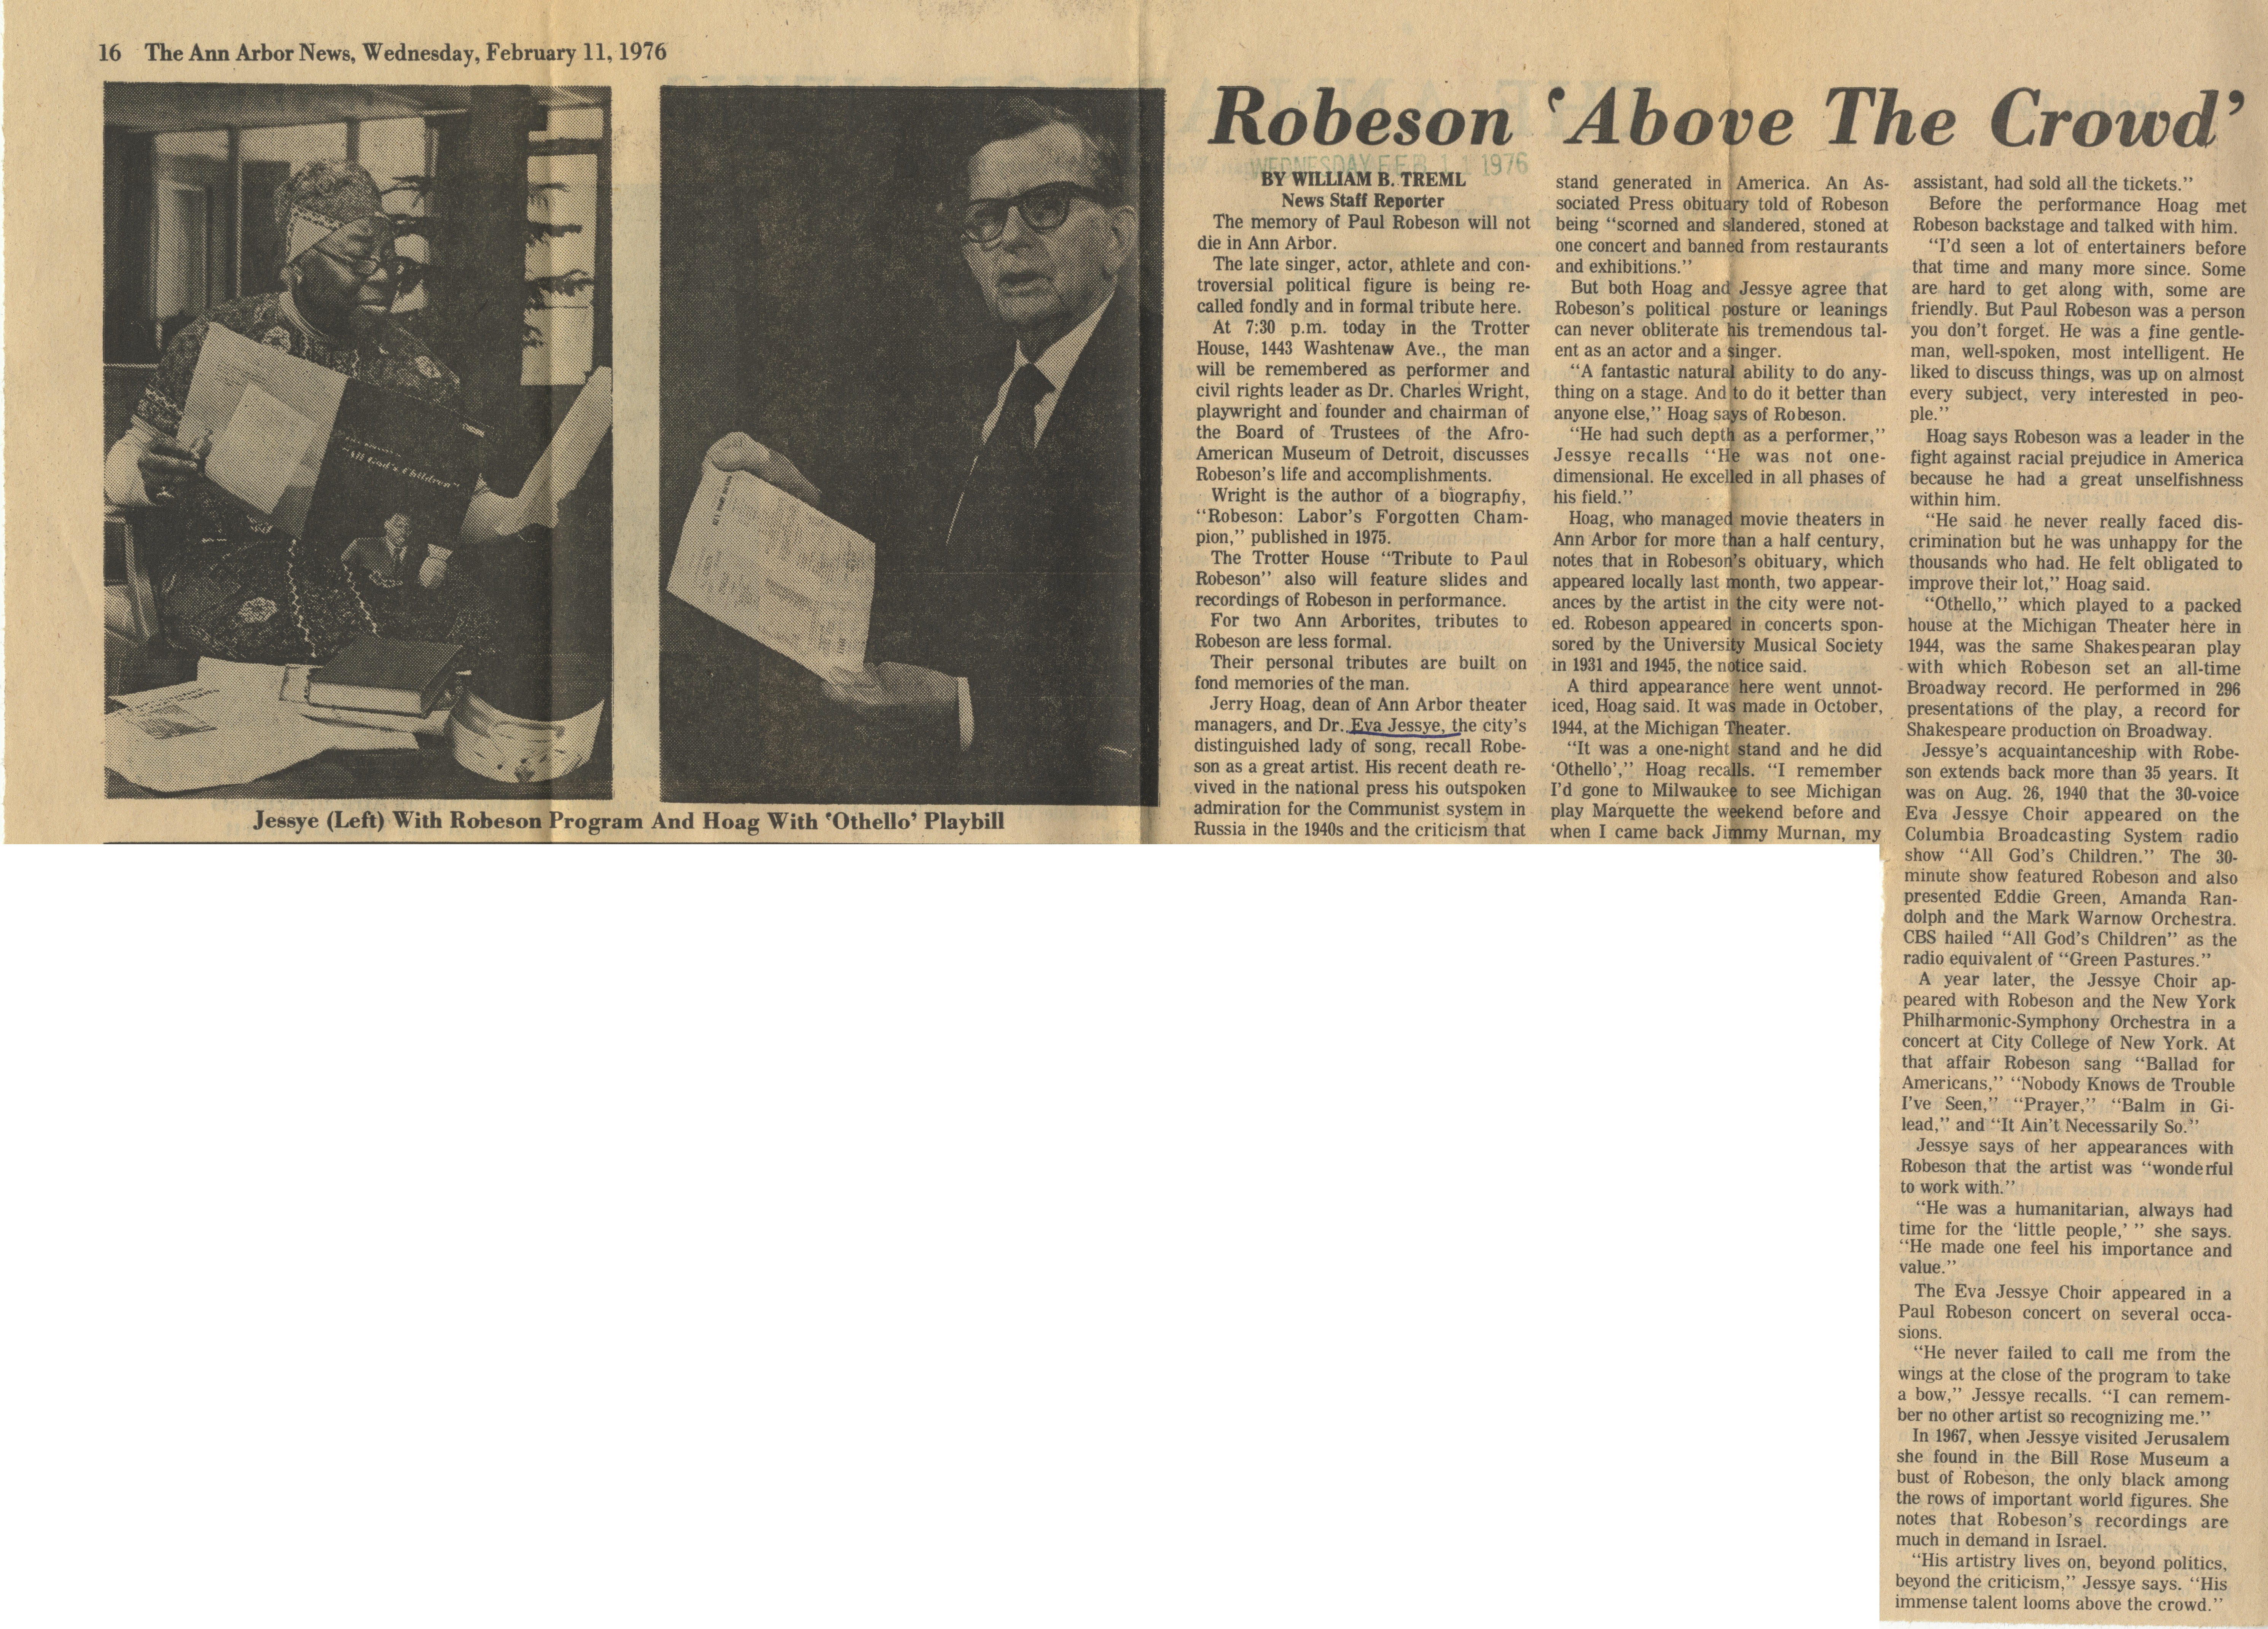 Robeson 'Above The Crowd' image